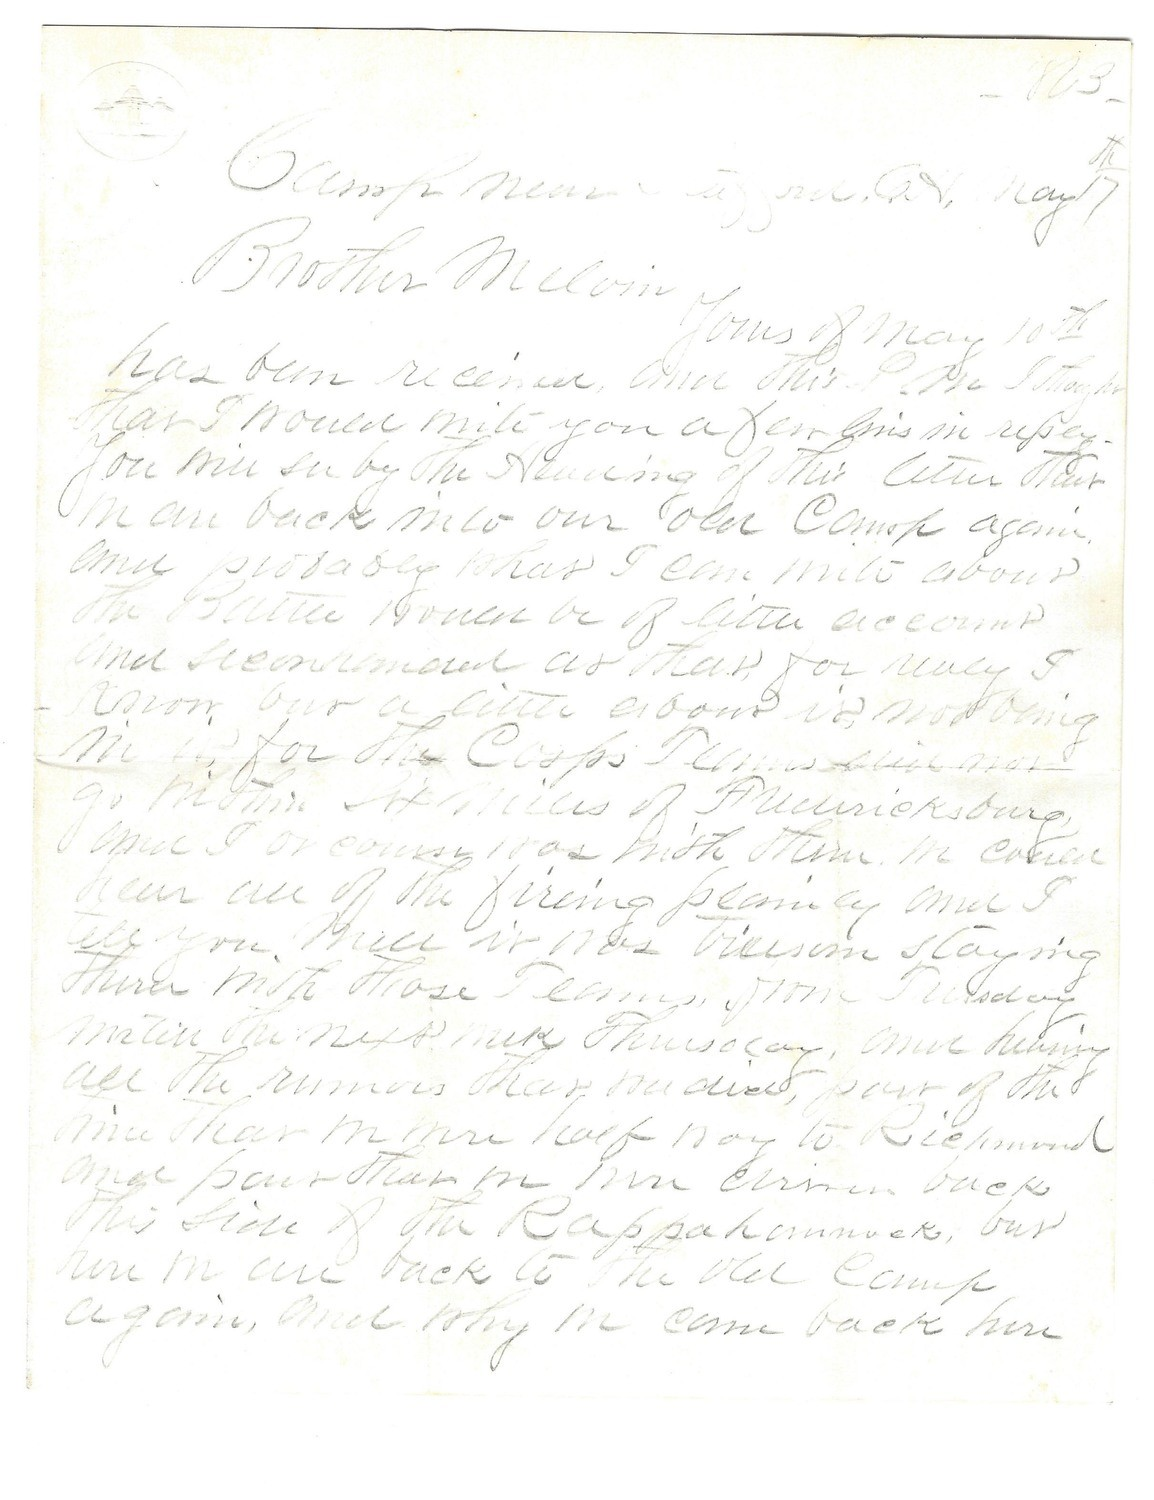 JUST ADDED ON 3/6 - FOUR PAGE CIVIL WAR LETTER WRITTEN BY NORMAN RAY / 33RD MASSACHUSETTS - MAY 17TH, 1863 - JACKSON'S DEATH - EXCELLENT CONTENT!